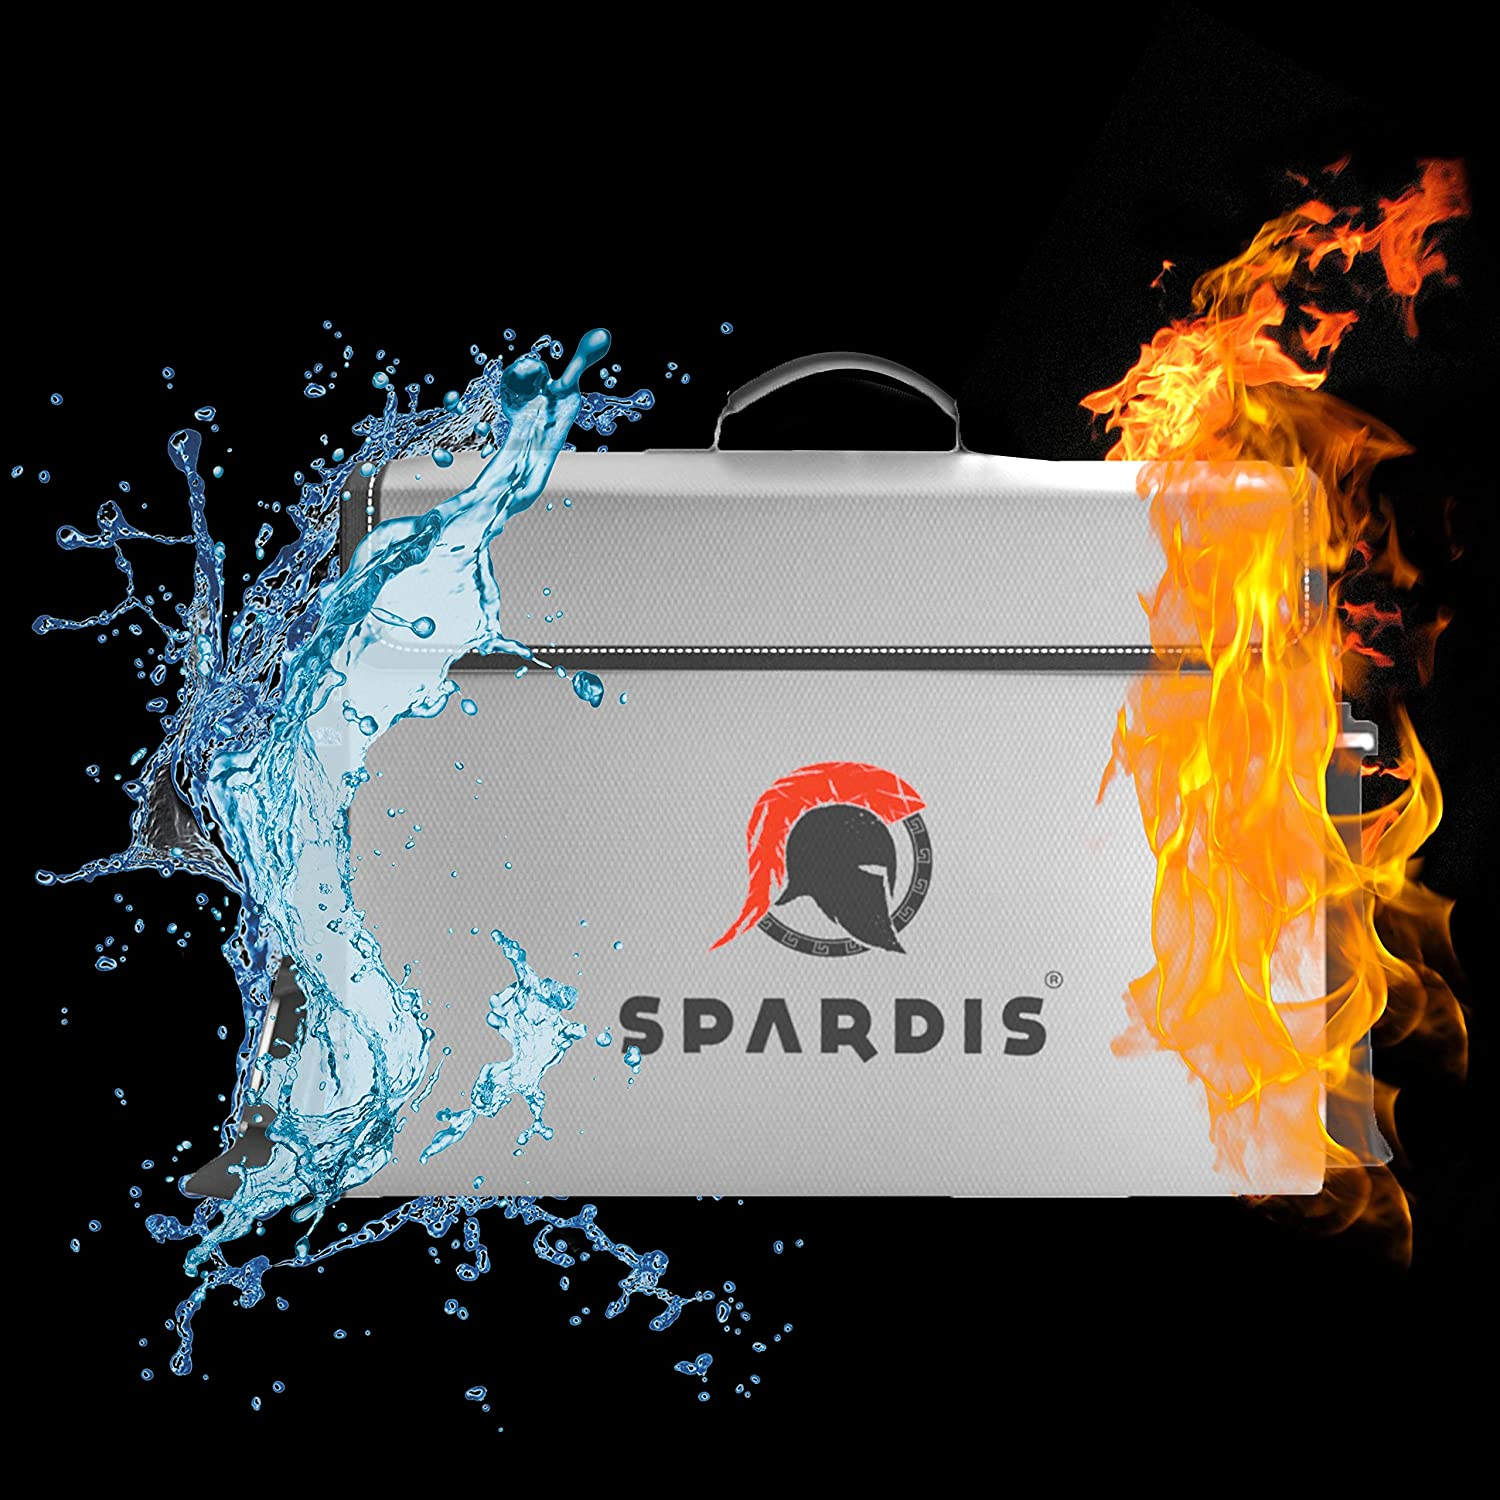 """16/"""" x 12/"""" x 3.5/"""" Spardis XXL Fireproof Document Safe Bag with Locking Zipper Heat Resistant to 2100 F Degrees with Dual Layer Silicone Coated Fiberglass and Heat Blocking Aluminum"""